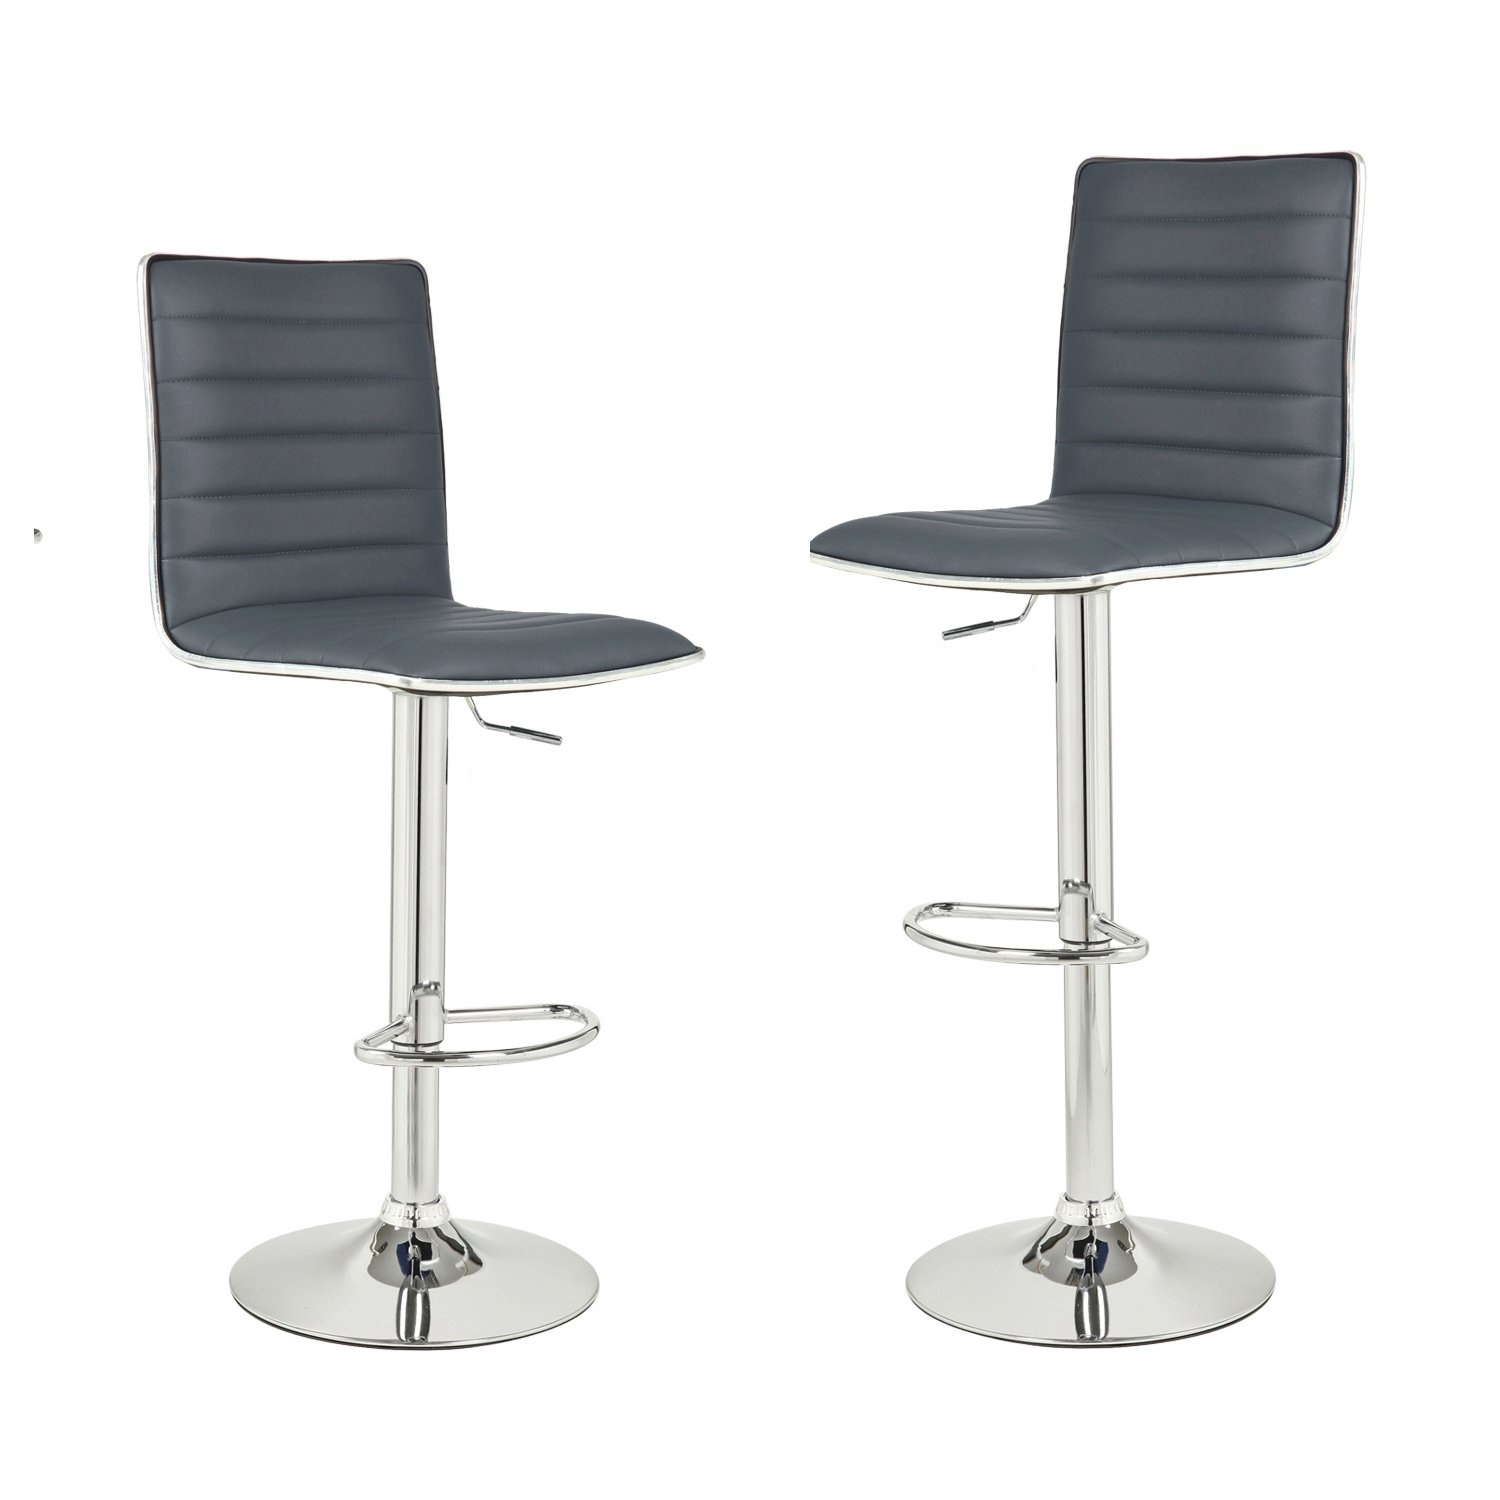 Fantastic Asense Adjustable And Rotation Bar Stools With Back Bar Chair Set Of Two Pu Dark Grey Machost Co Dining Chair Design Ideas Machostcouk